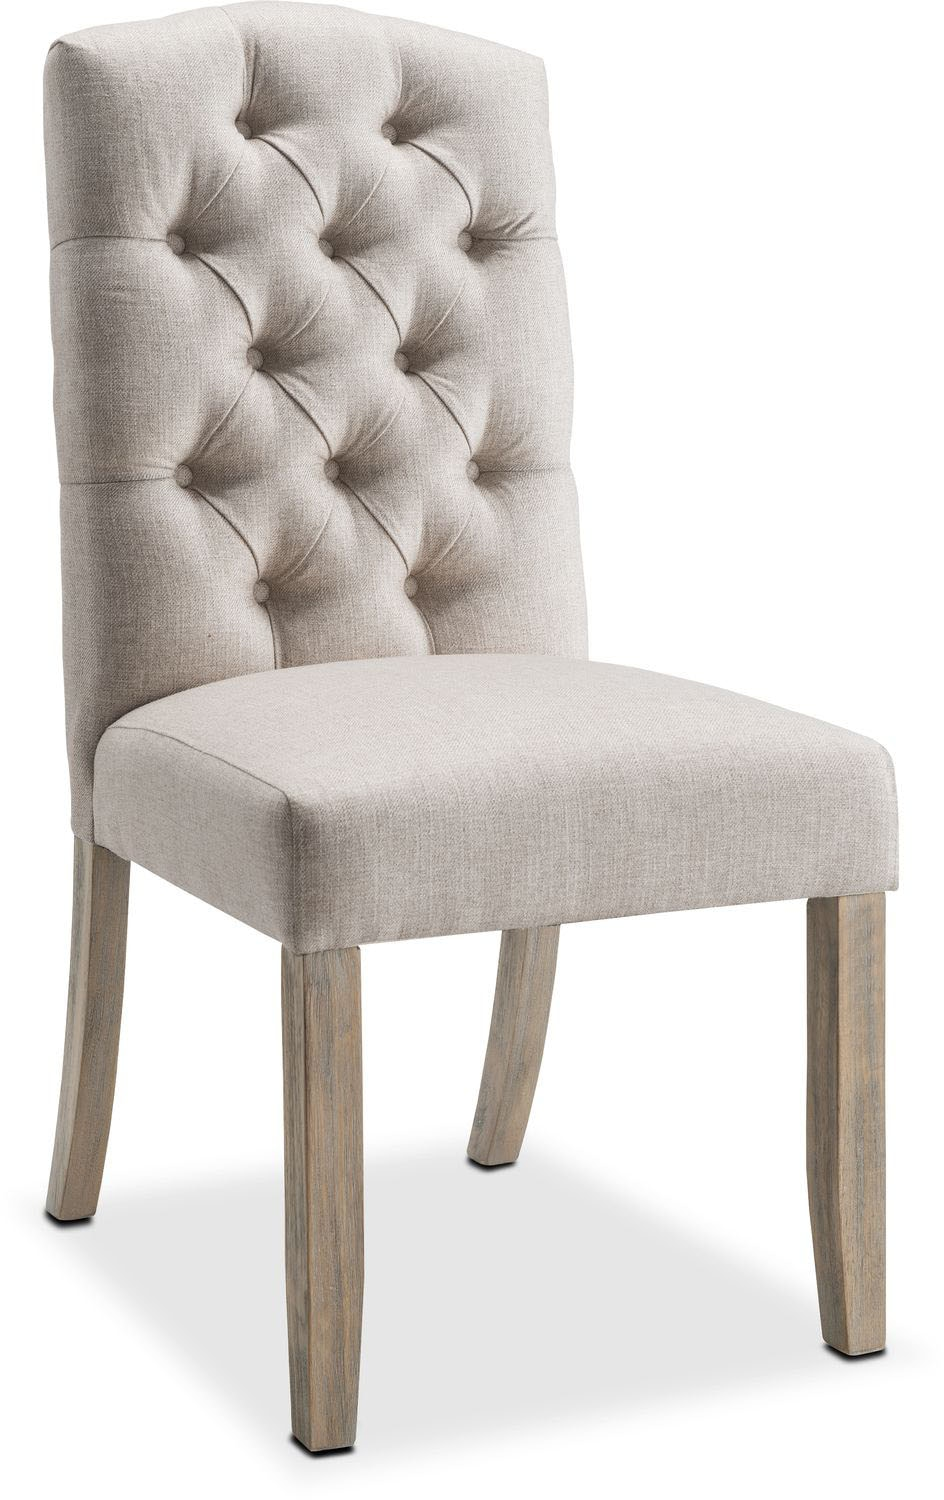 Dining Room Furniture - Drexel Side Chair